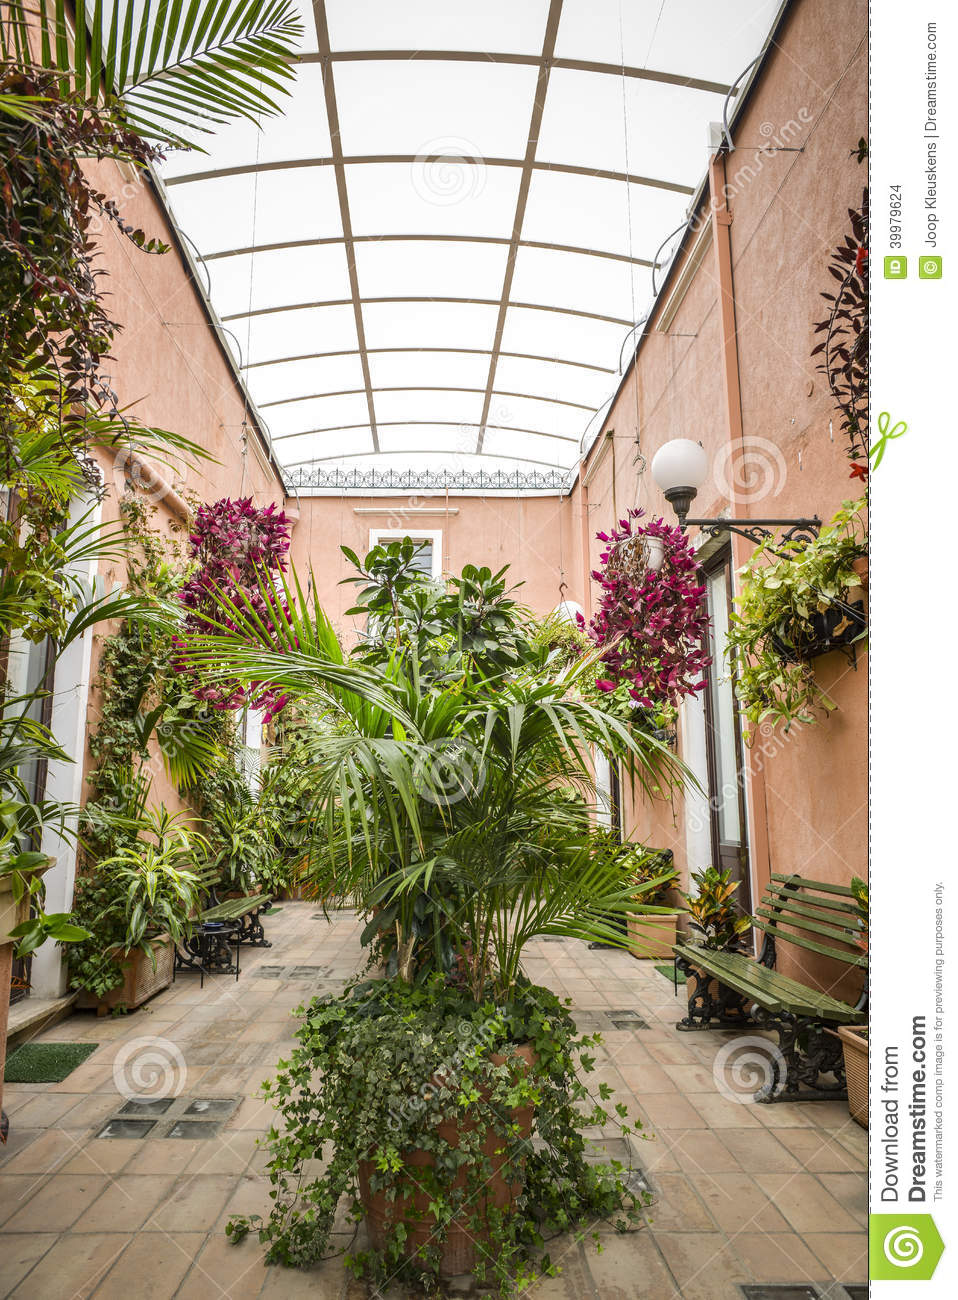 Italian terrace garden stock photo image of residential for Terrace plants